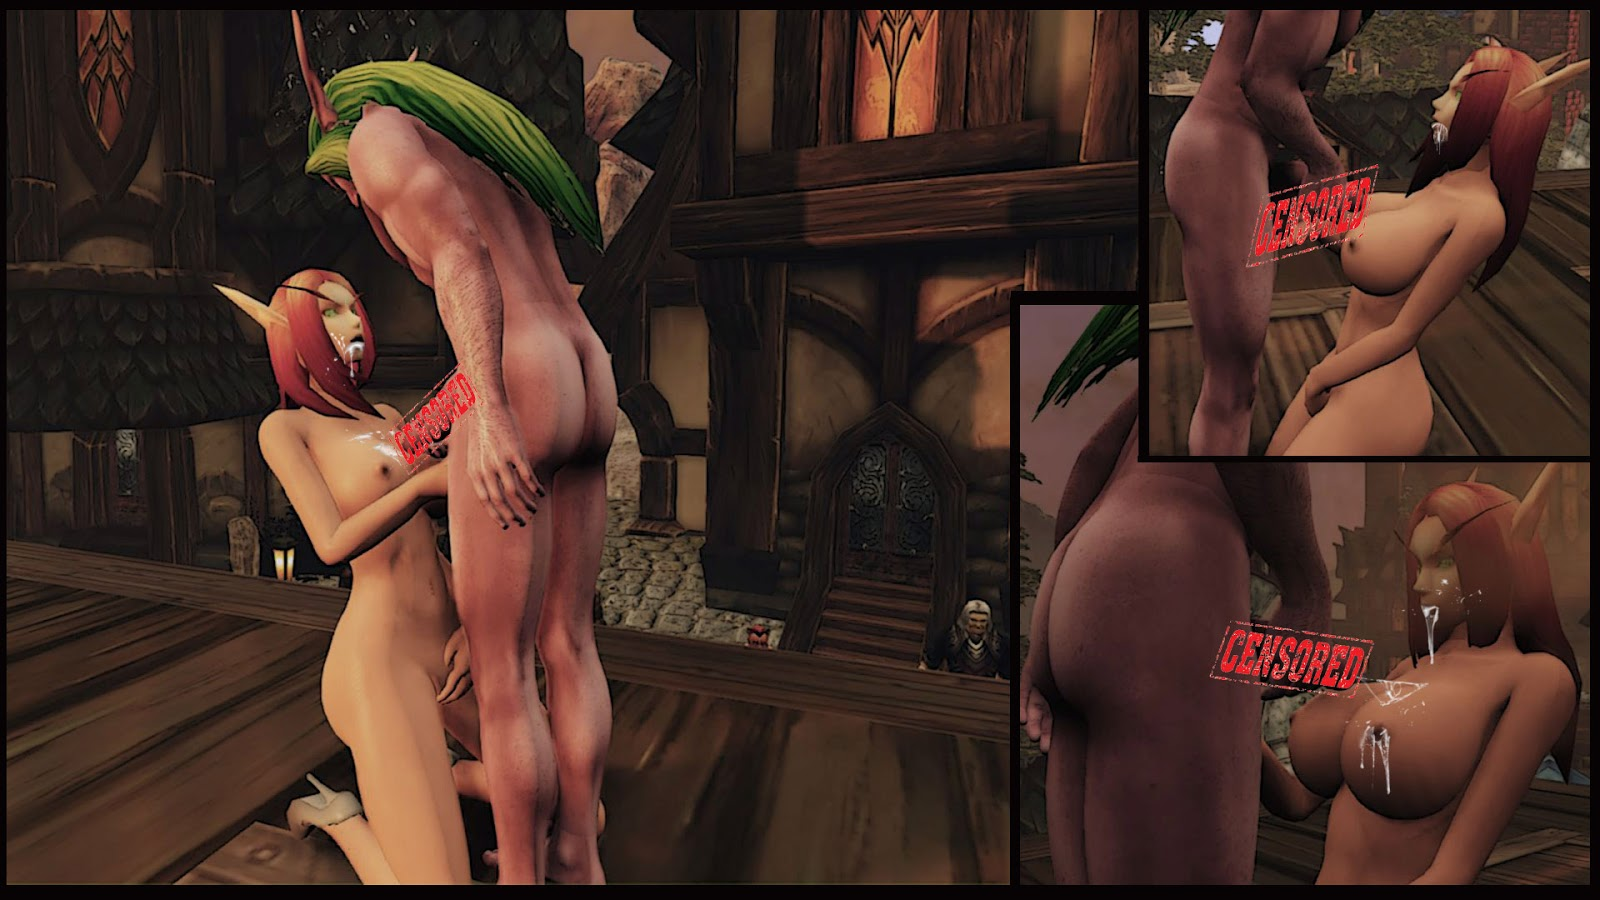 Elf sex toon game hentai toons